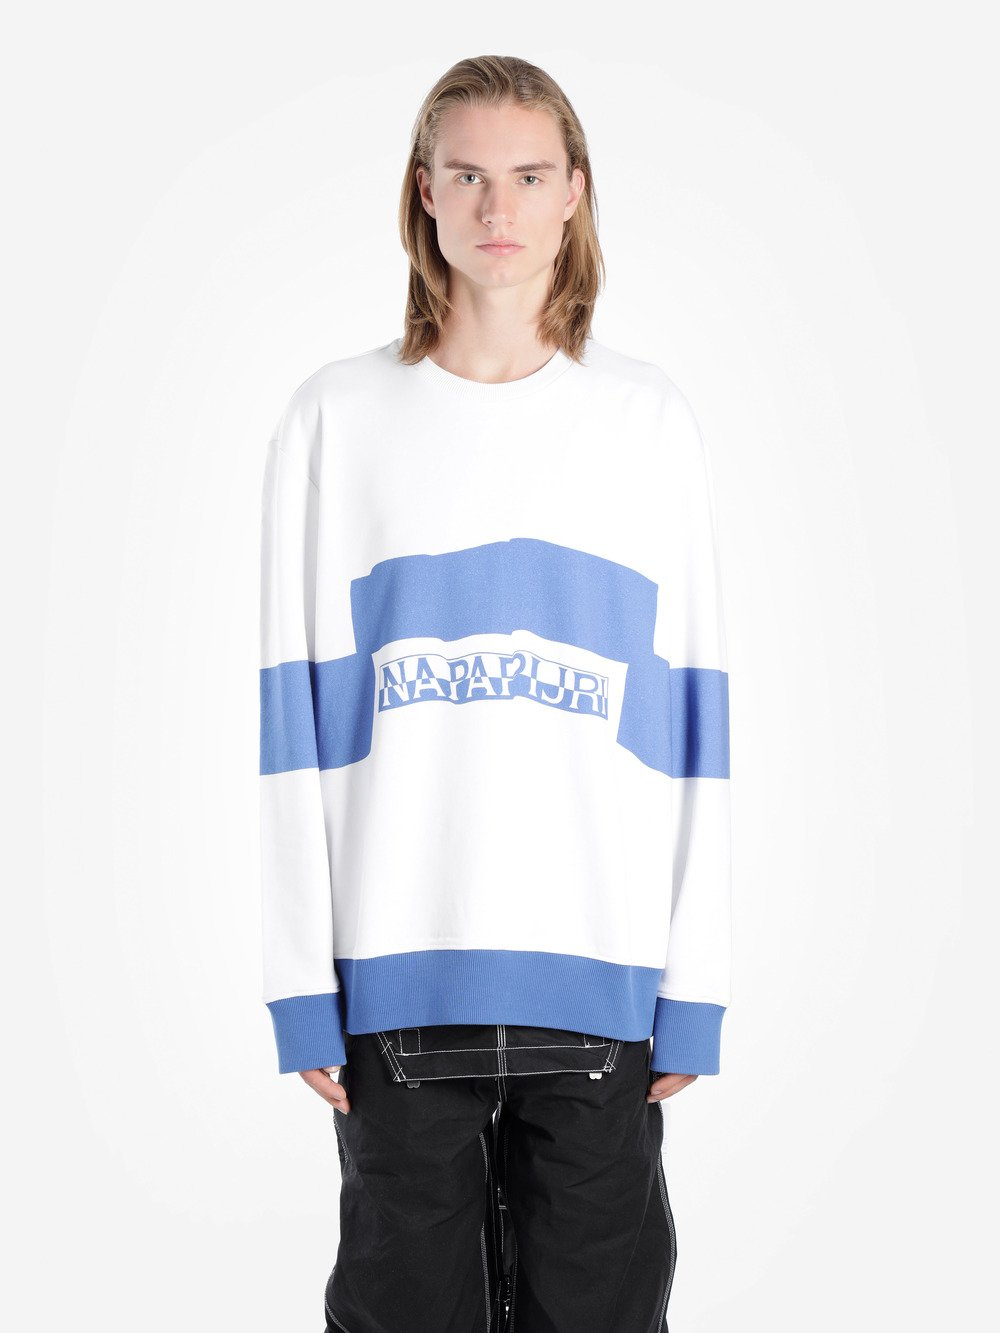 "NAPA BY MARTINE ROSE ""NAPAPIJRI"" COTTON FRENCH TERRY SWEATSHIRT"